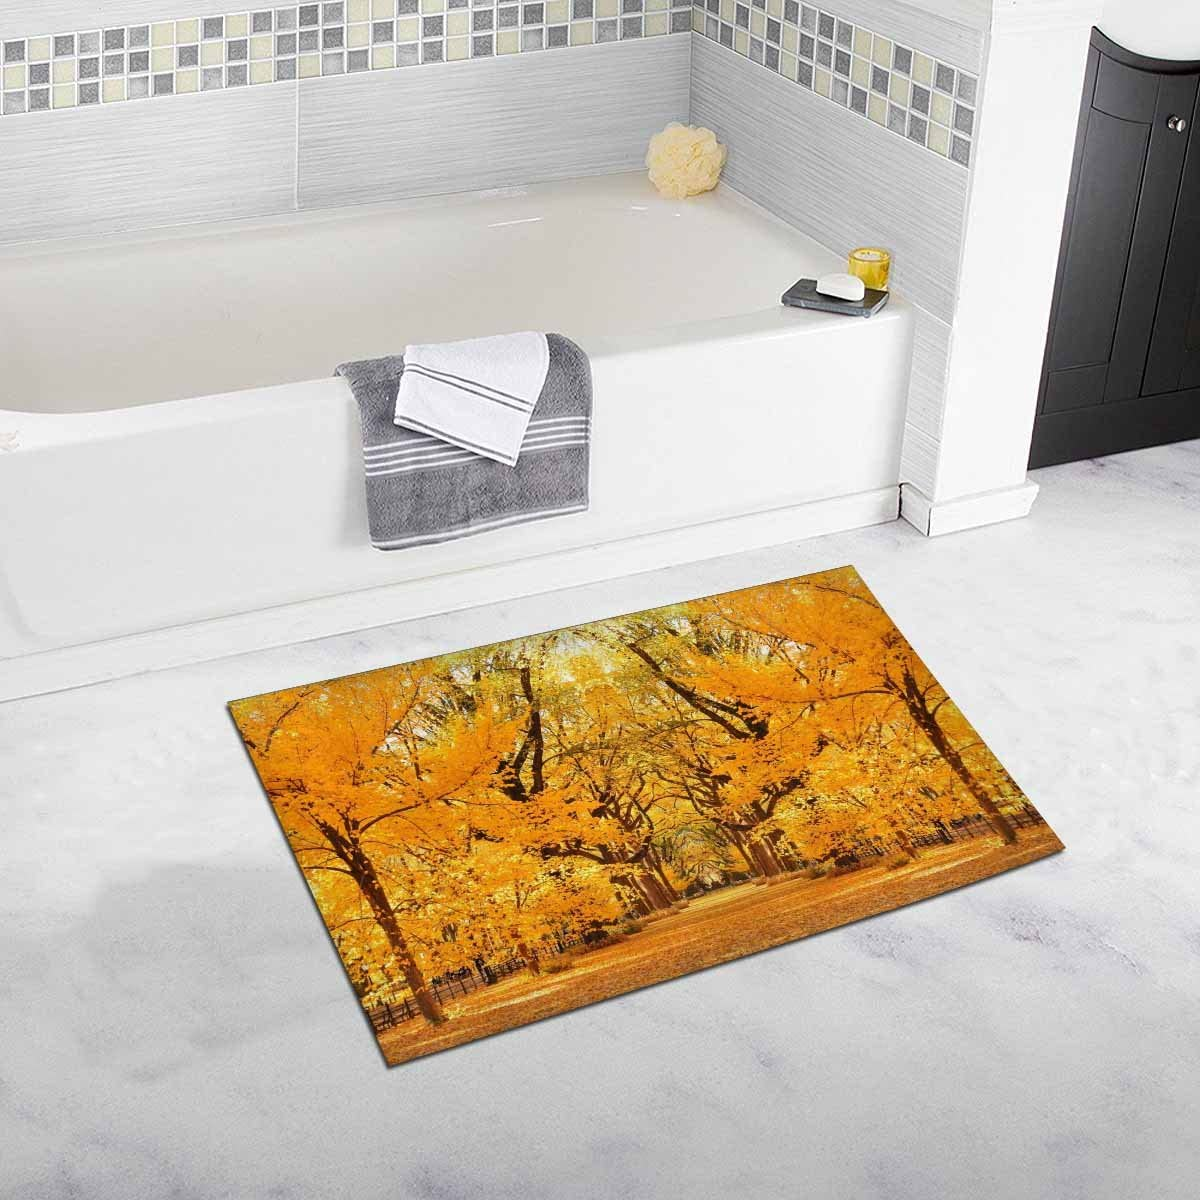 INTERESTPRINT Central Park Autumn in Midtown Manhattan New York City House Decor Non Slip Bath Rug Mat Absorbent Bathroom Floor Mat Doormat 20 x 32 Inches